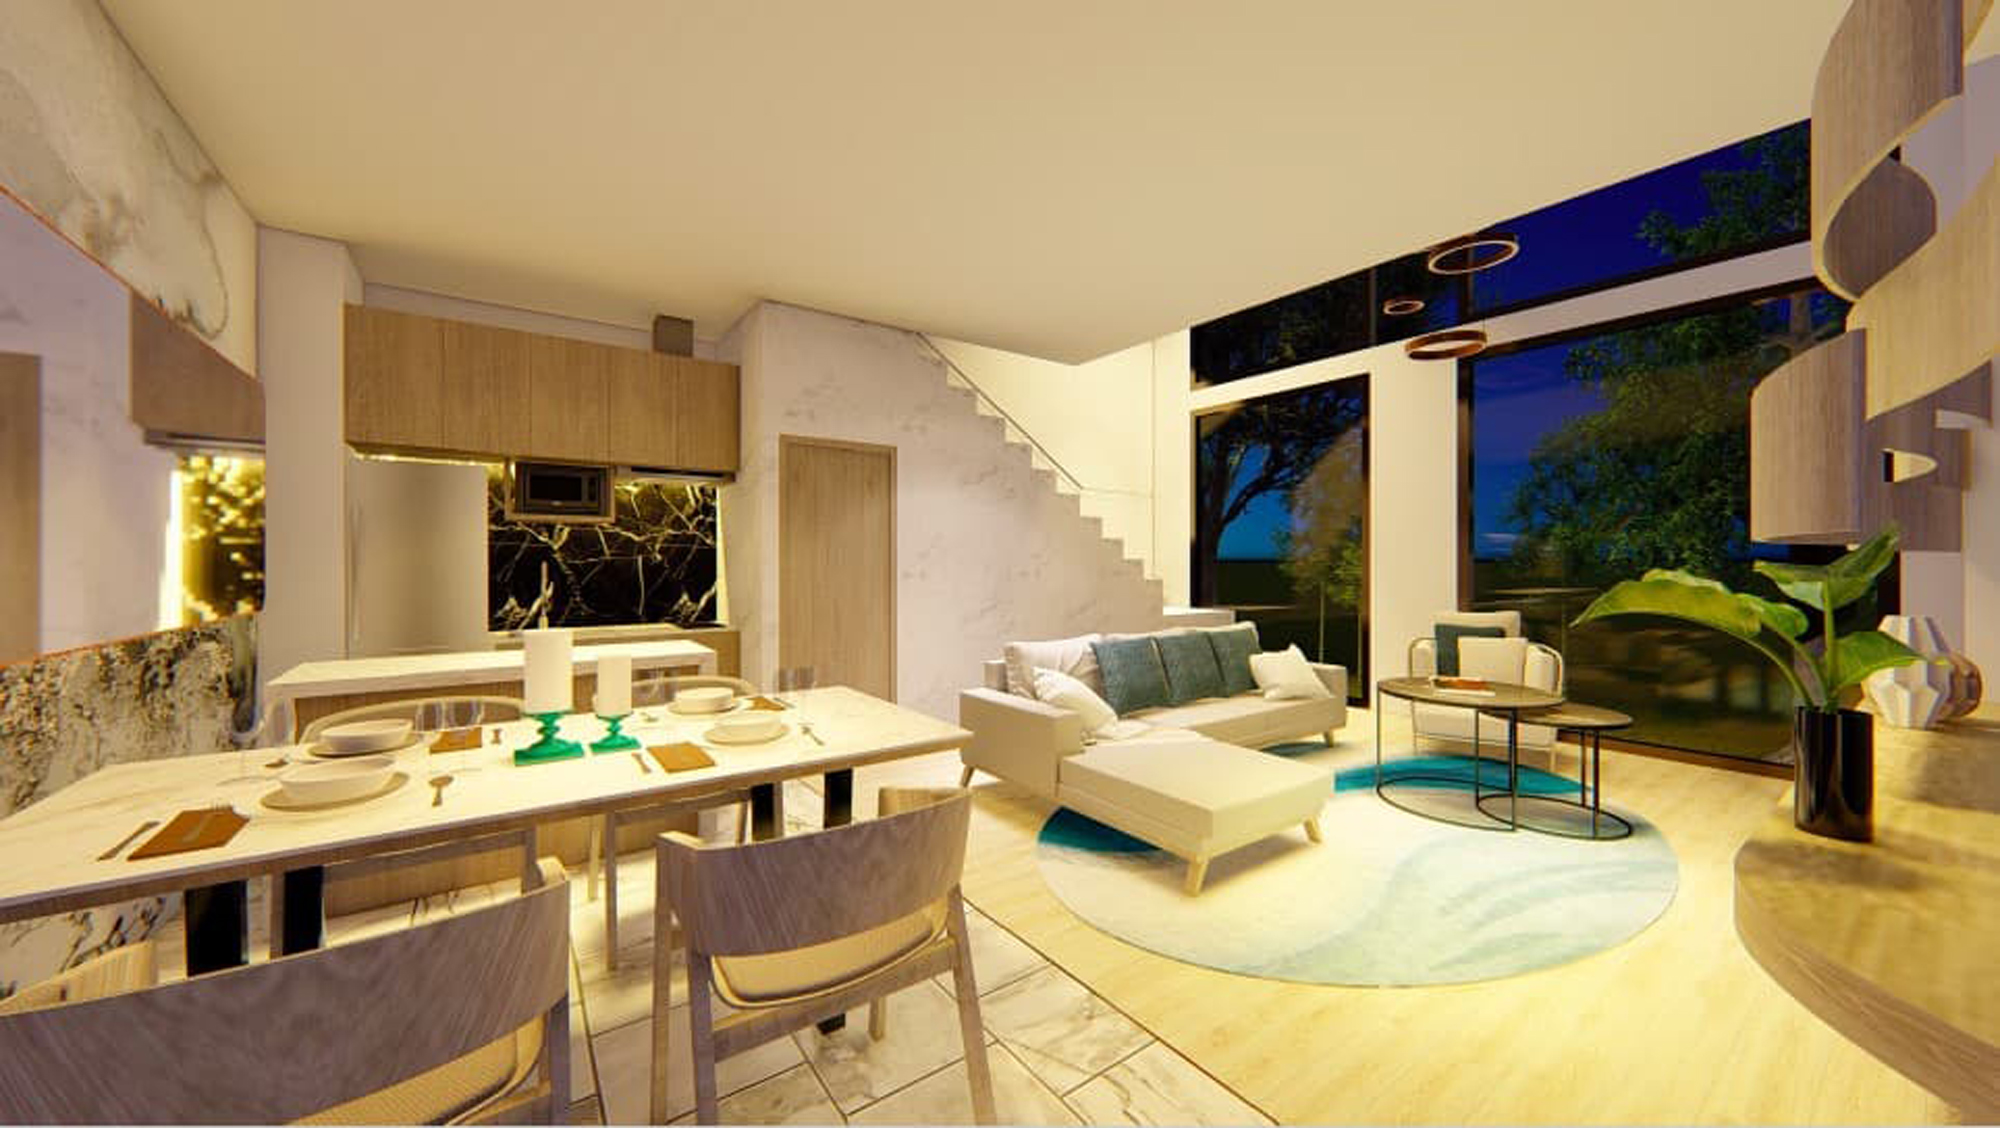 2 Bedroom unit in a large development in Rawai